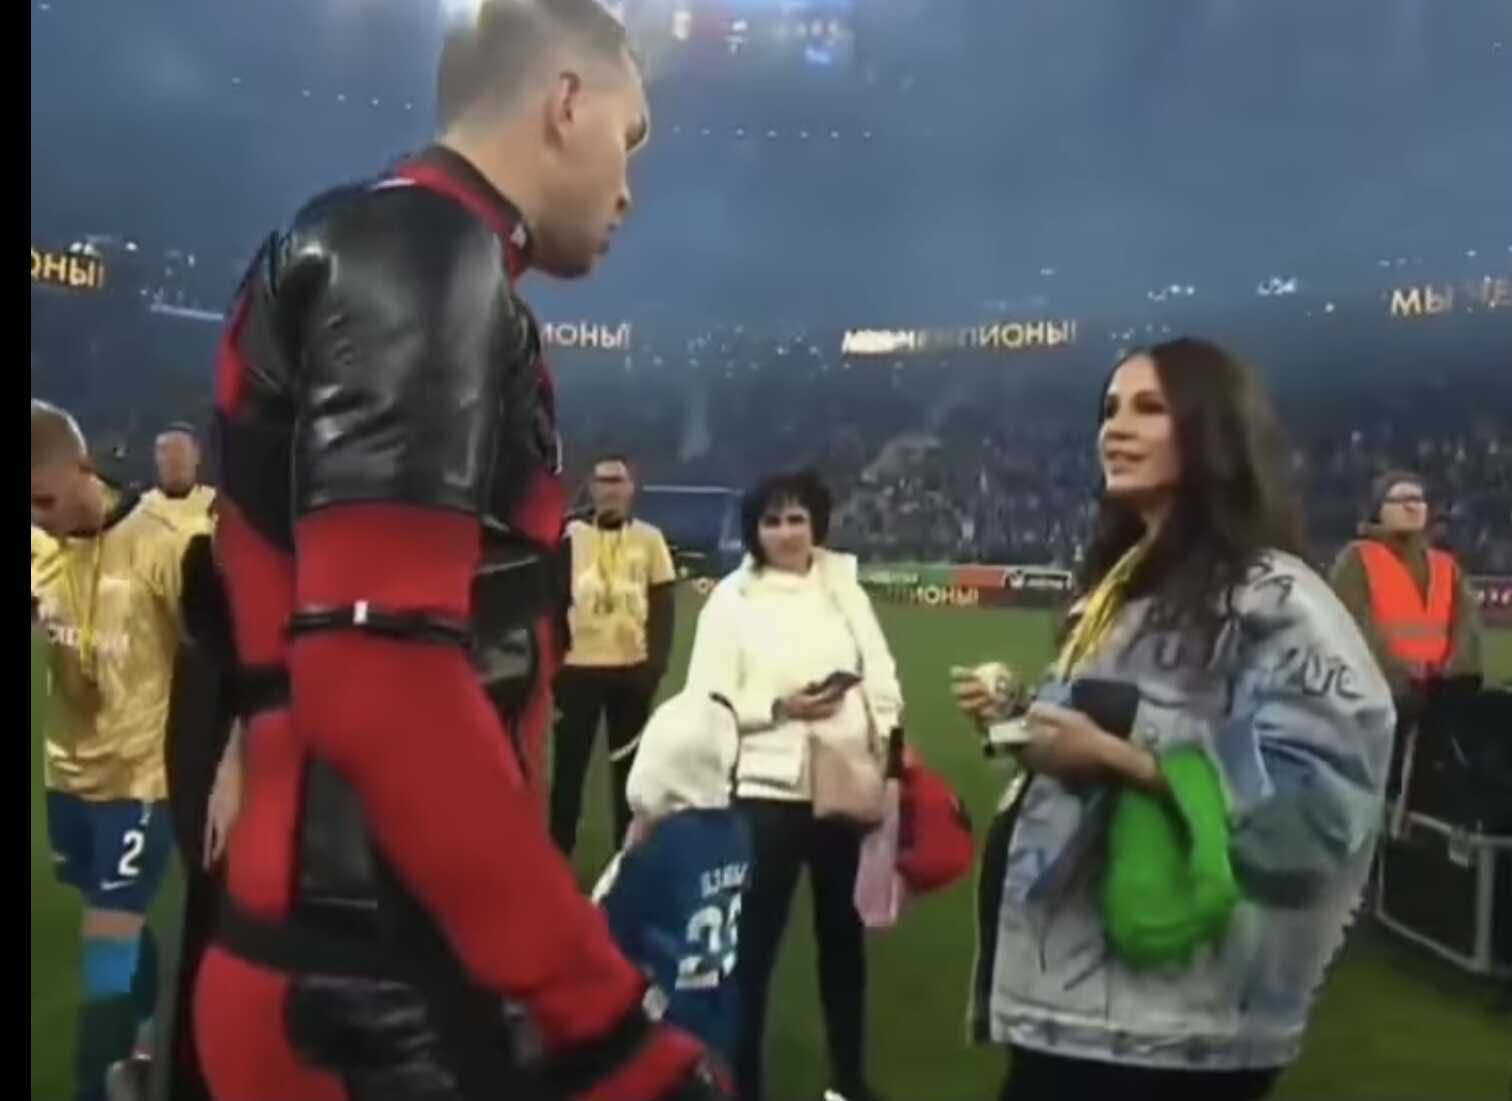 Deeply pregnant wife of Artyom Dziuba came to cheer for him at the stadium